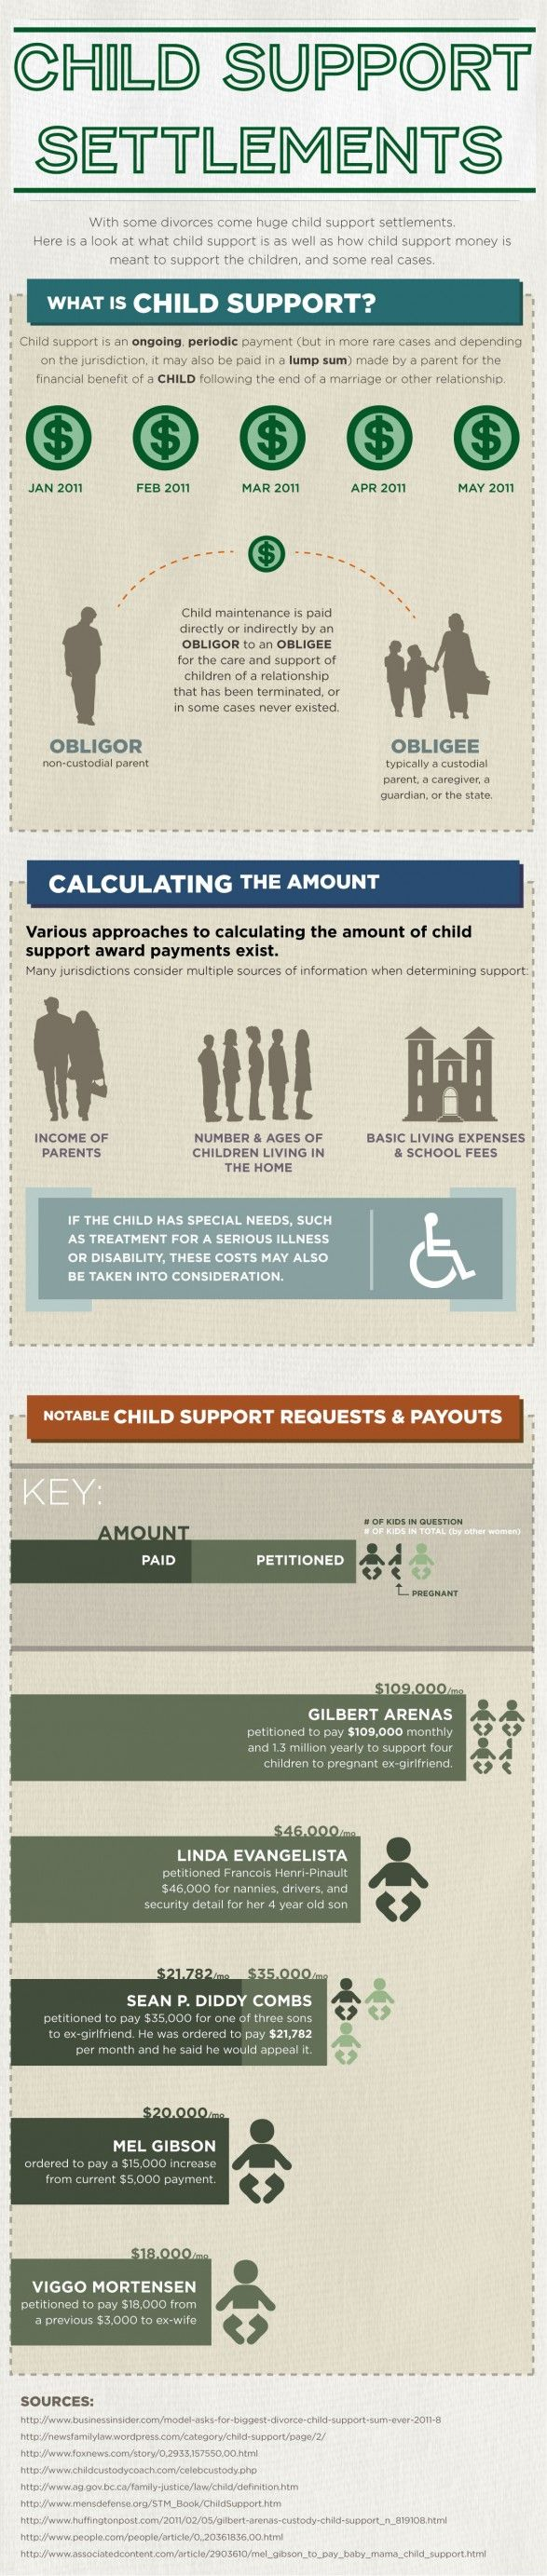 Infographic on what is child support and how it affects divorce.